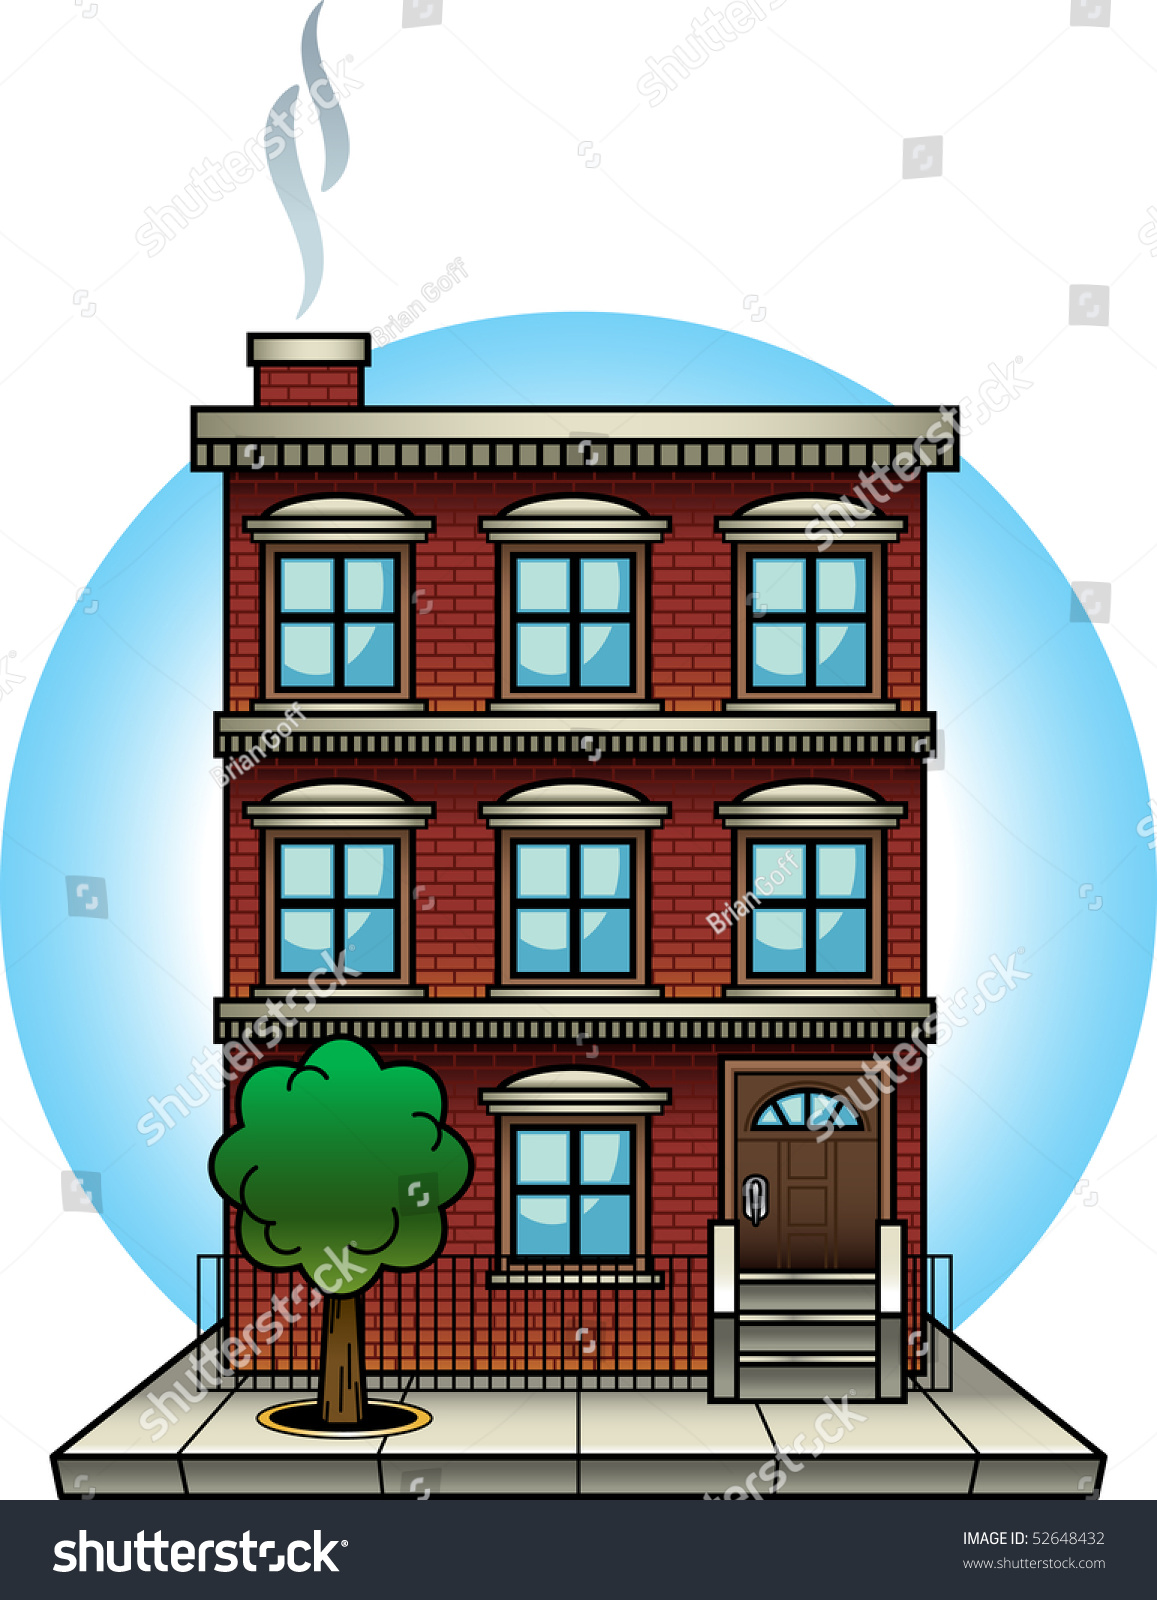 Cartoonstyle vector illustration brick apartment building for Apartment building drawing